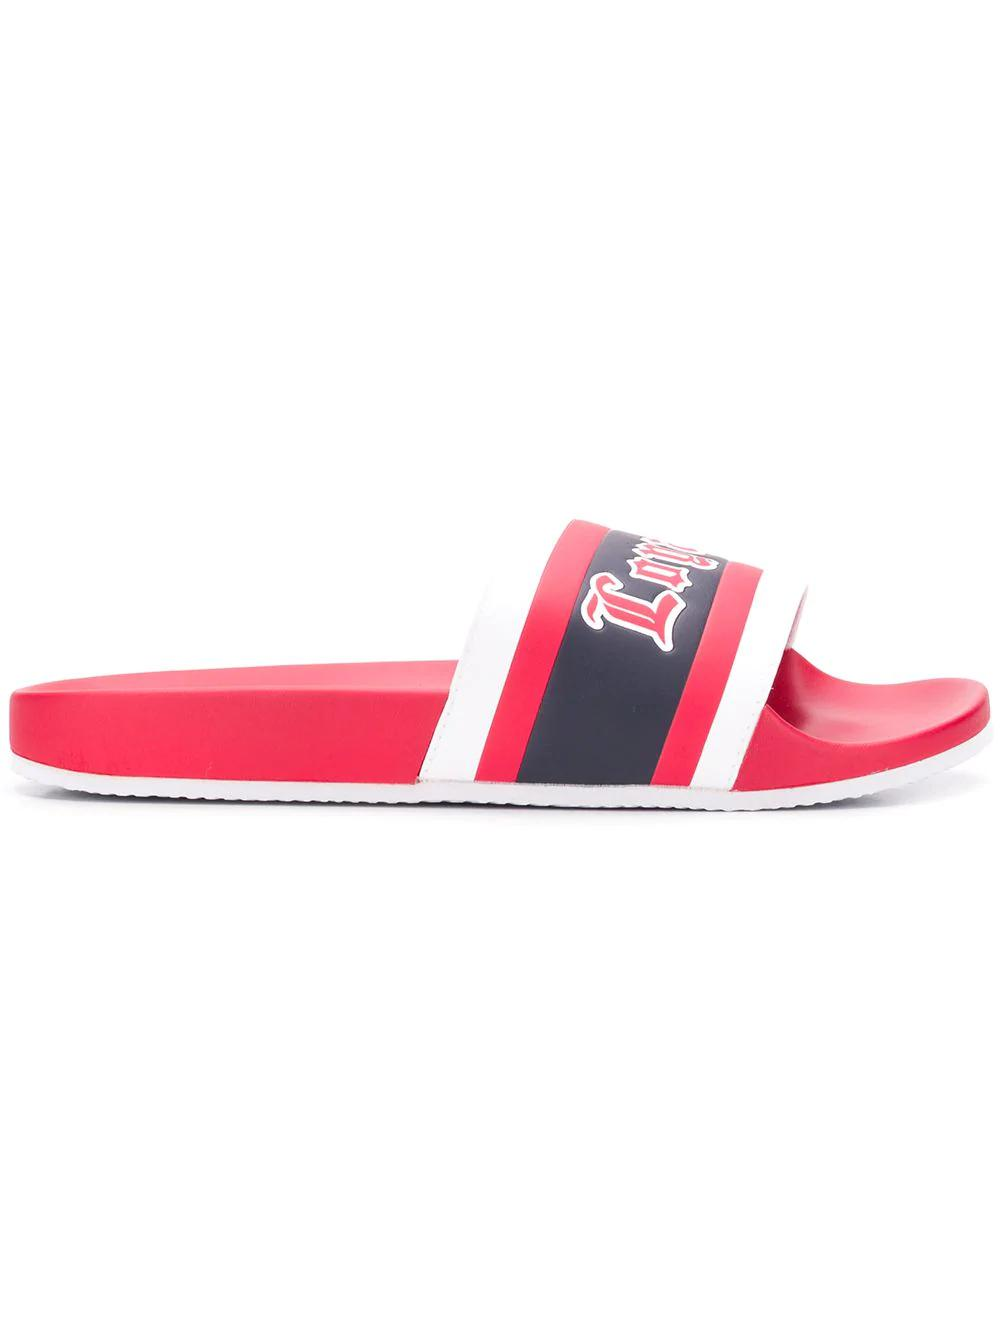 ee13379e289a42 Tommy Hilfiger Lewis Hamilton Loyal Sandal In Red